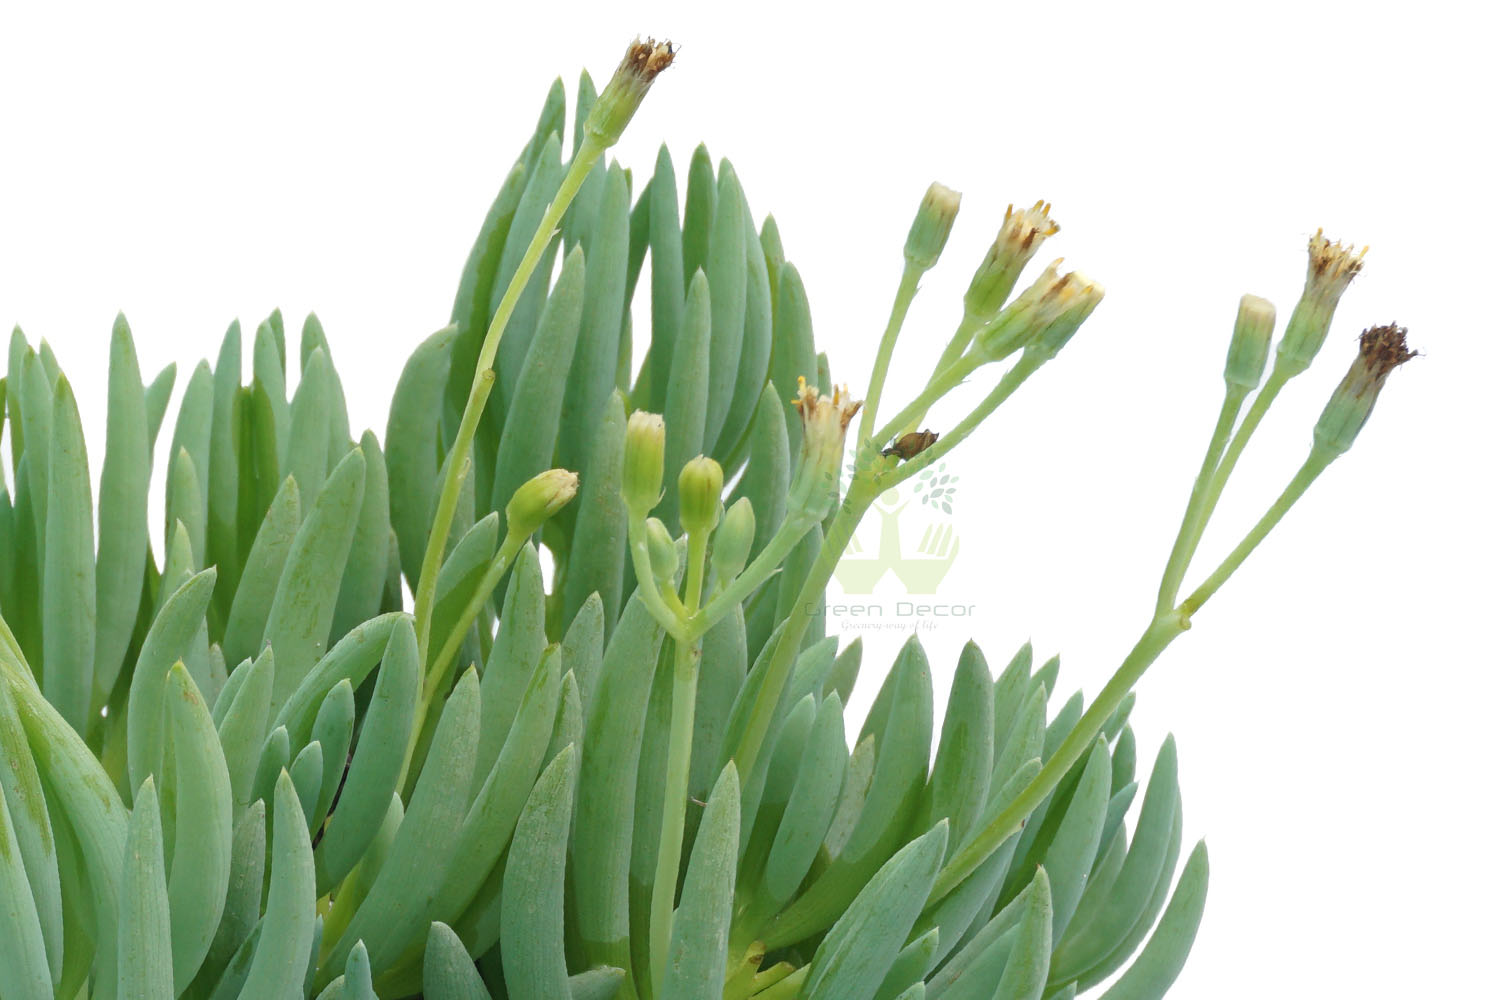 Buy Senecio Serpens Plants,White Pots and seeds in Delhi NCR by the best online nursery shop Greendecor.